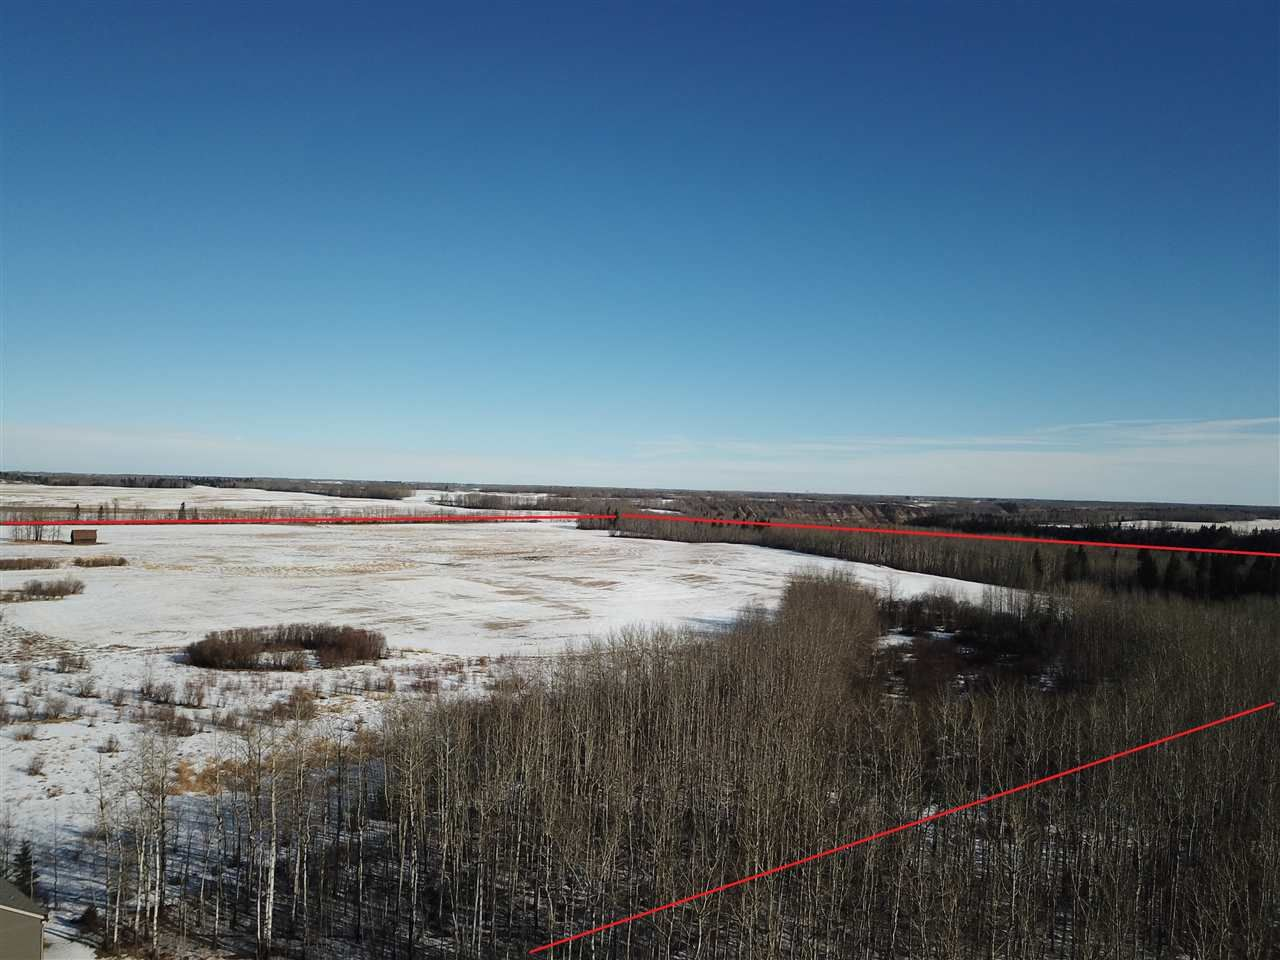 Main Photo: 50317 Rge Road 10: Rural Parkland County Rural Land/Vacant Lot for sale : MLS®# E4229985